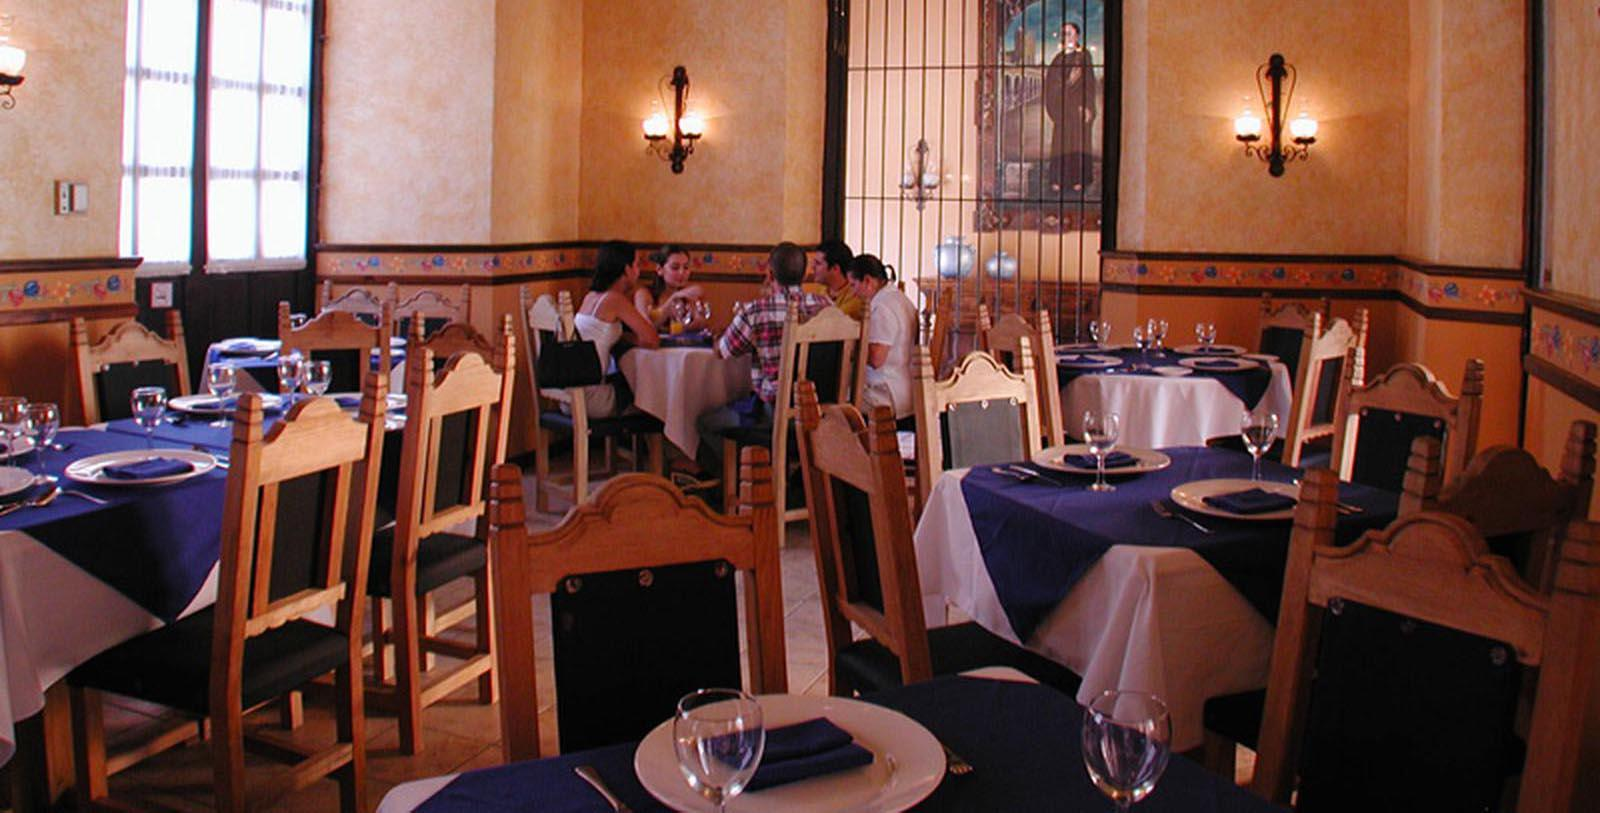 Image Dining Area La Misión de Fray Diego, 1867, Member of Historic Hotels Worldwide, in Merida, Mexico, Taste